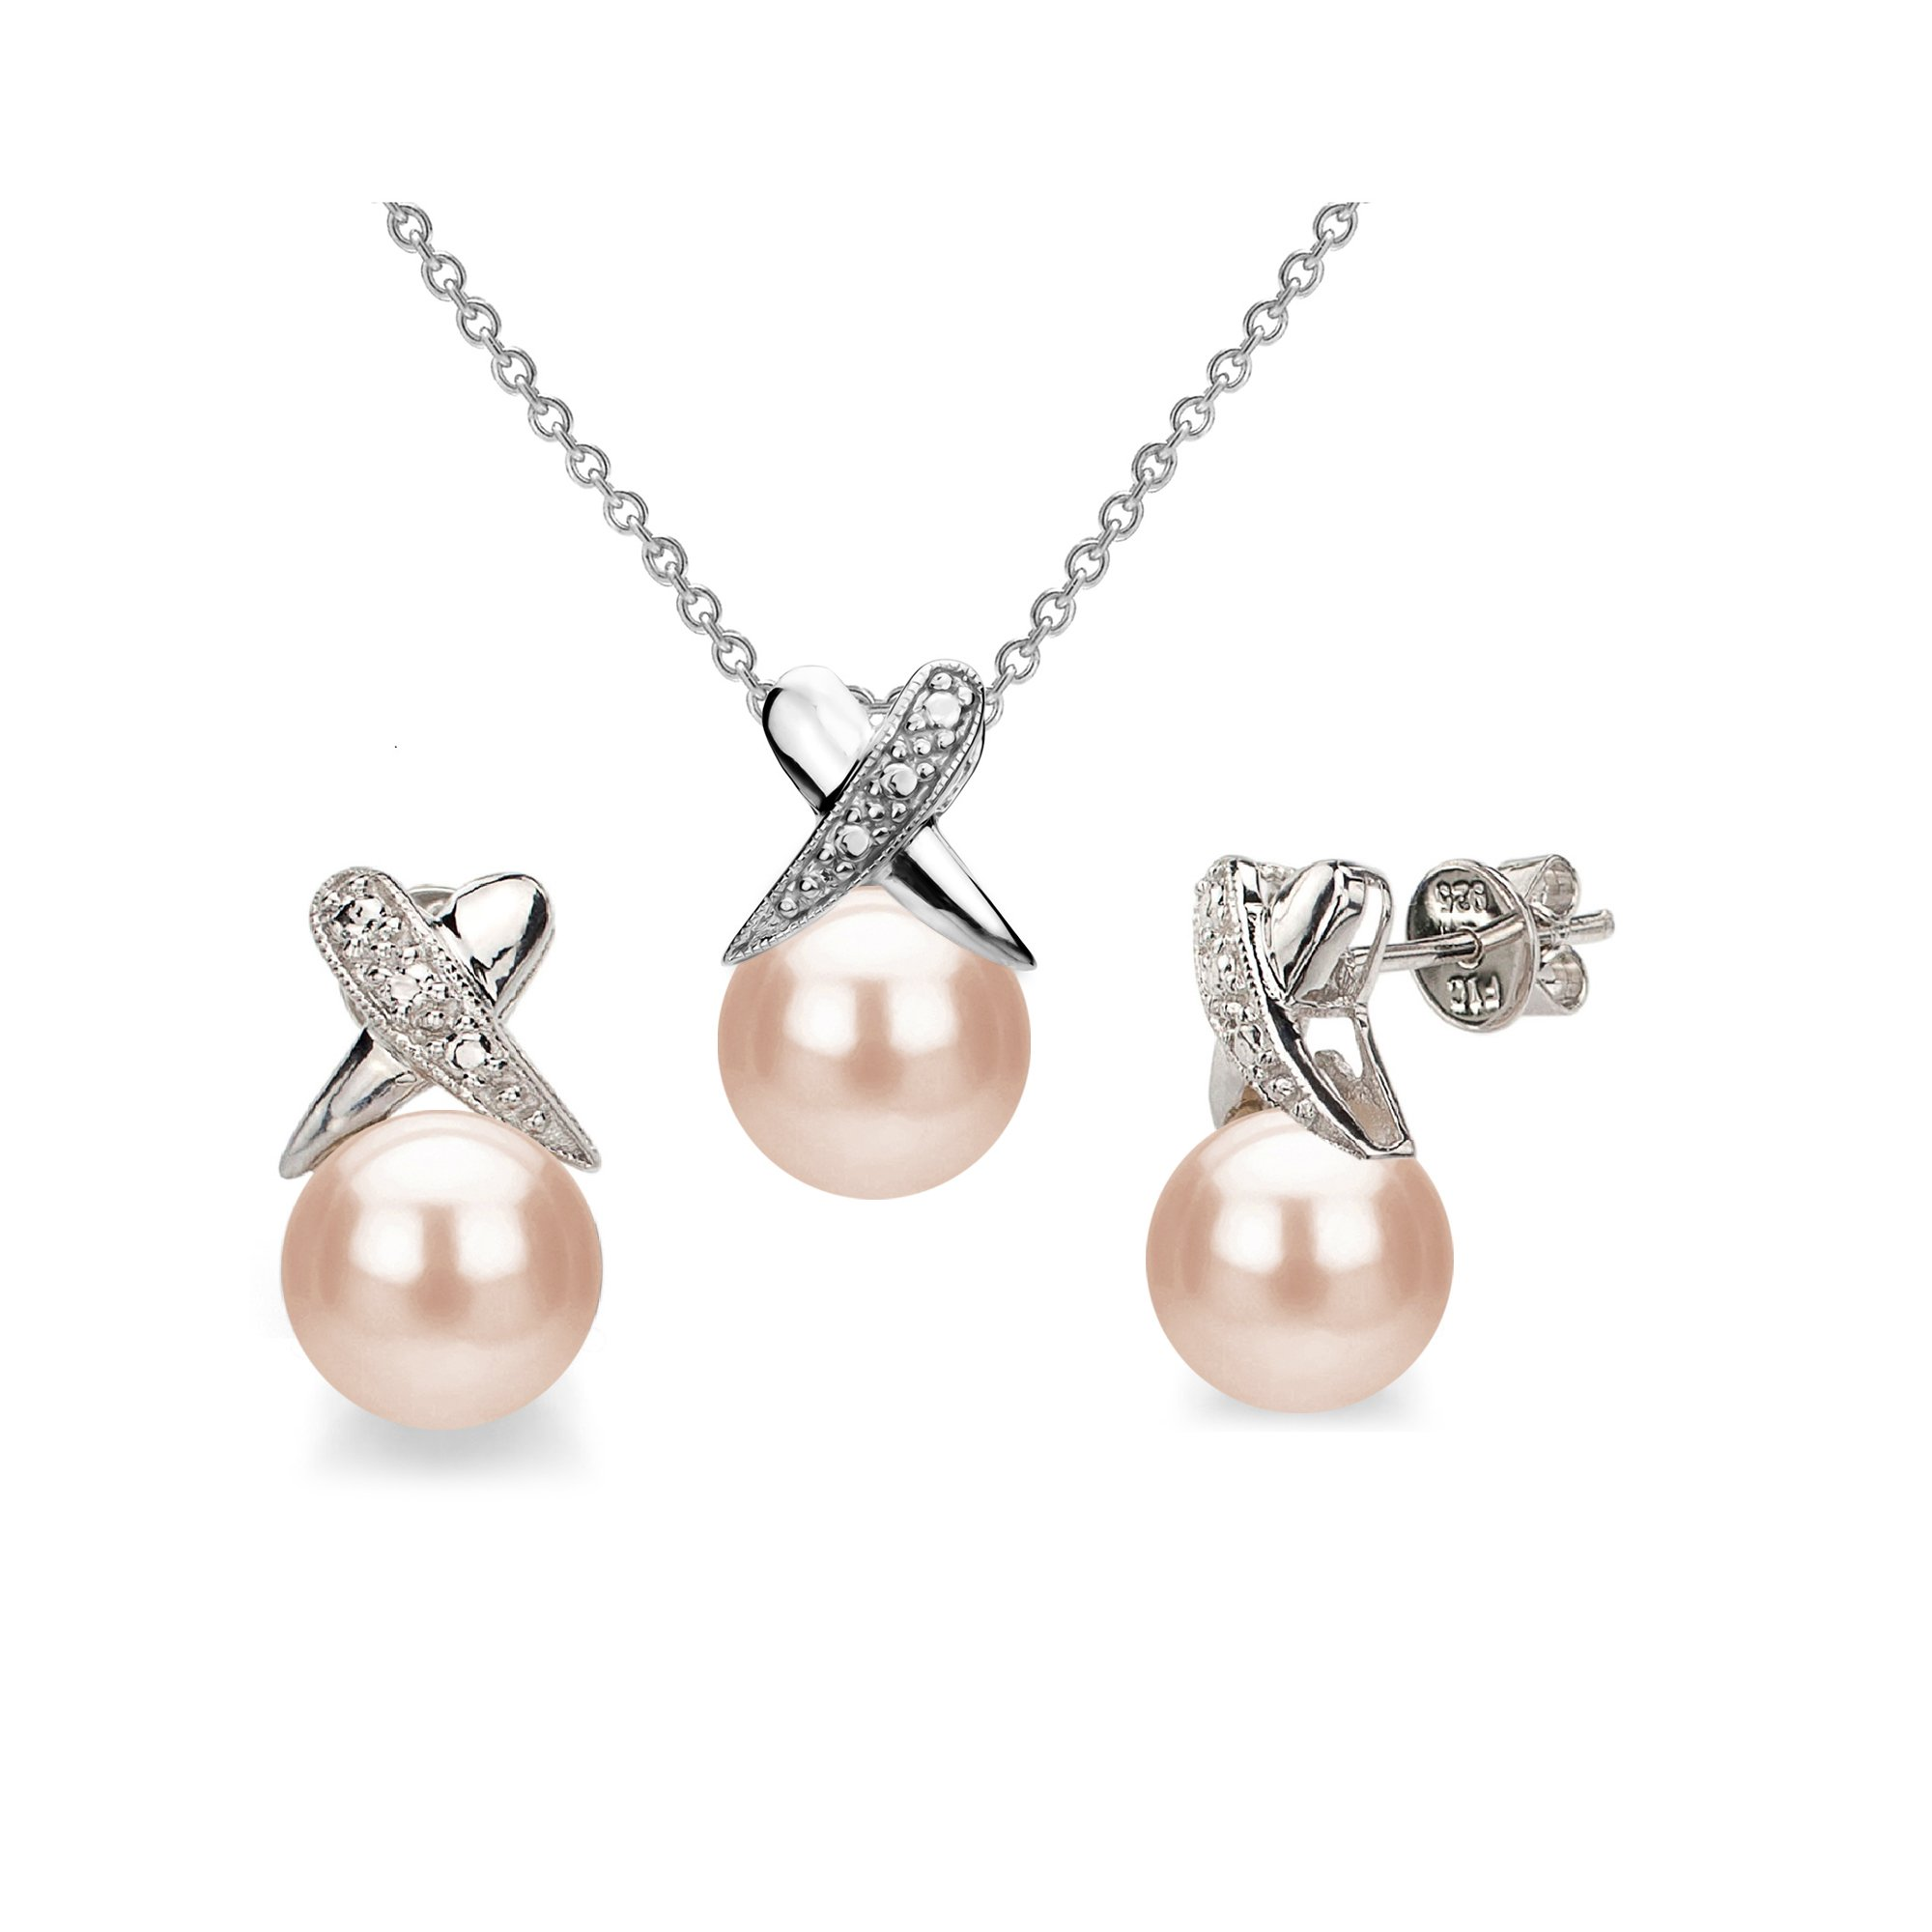 Pink Cultured Freshwater Pearl Earrings and Sterling Silver Necklace Pendant Set Anniversary Gift 8-8.5mm